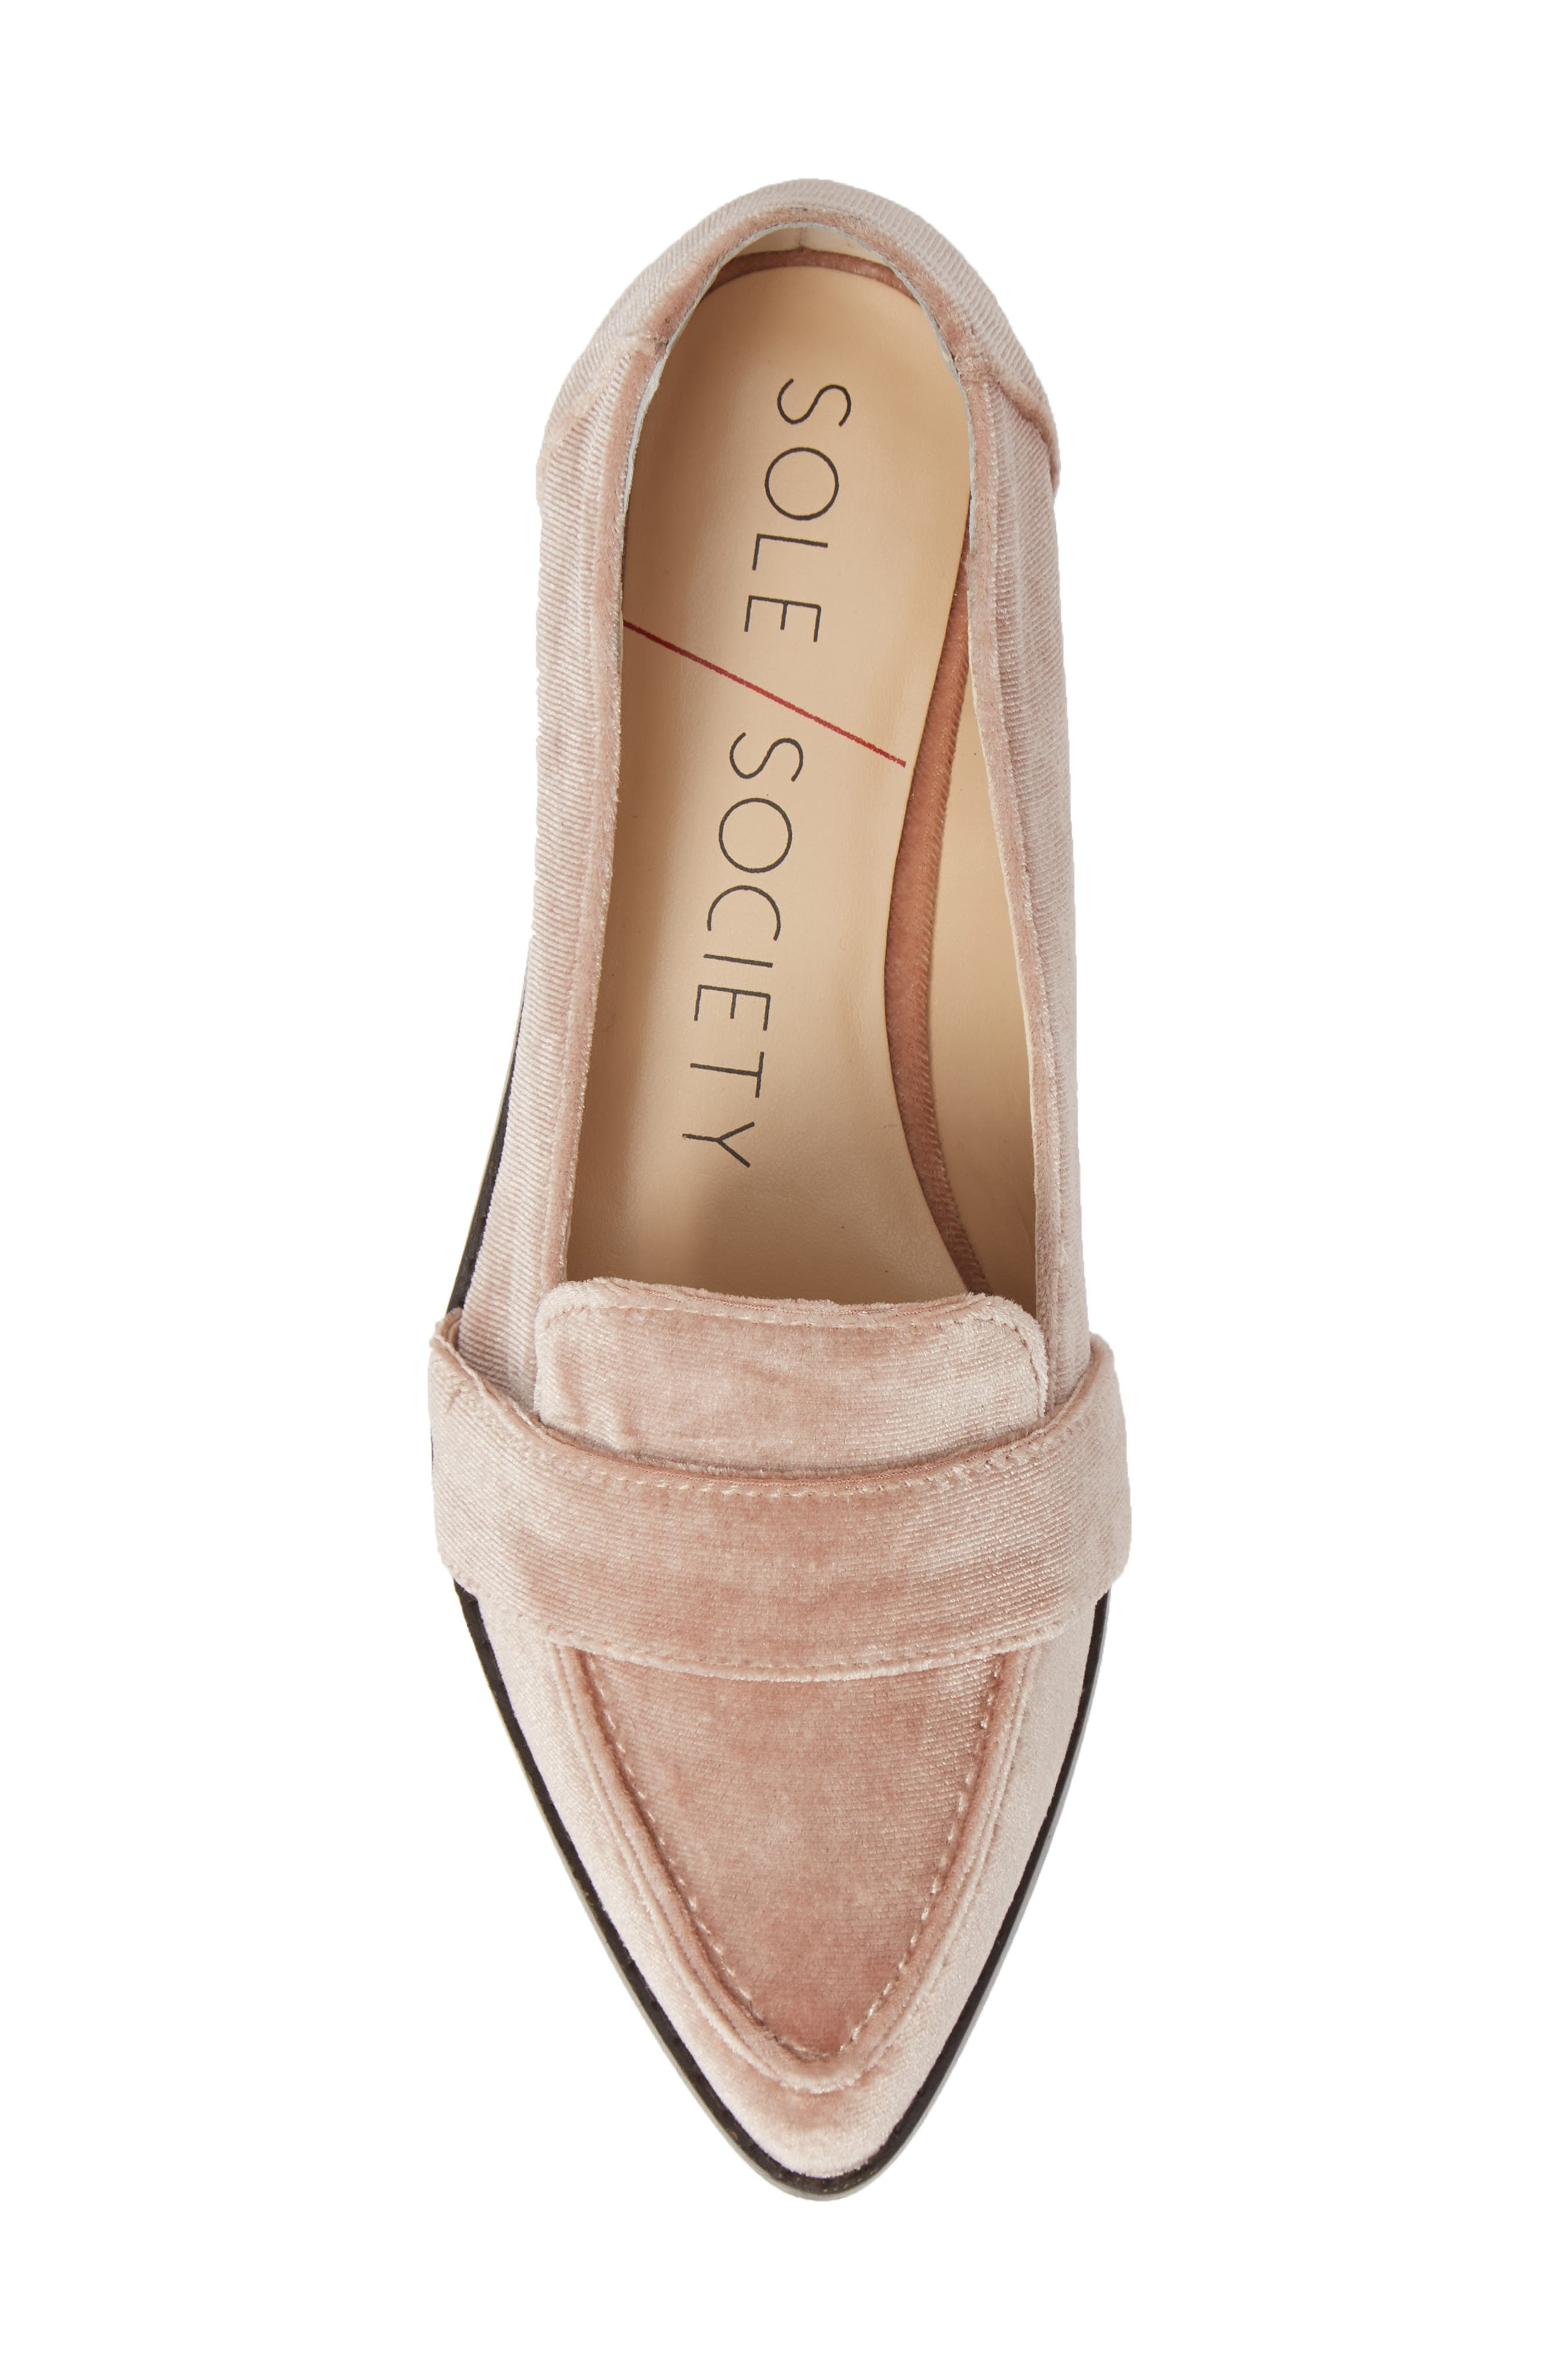 SOLE SOCIETY, Edie Pointy Toe Loafer, Alternate thumbnail 5, color, 682